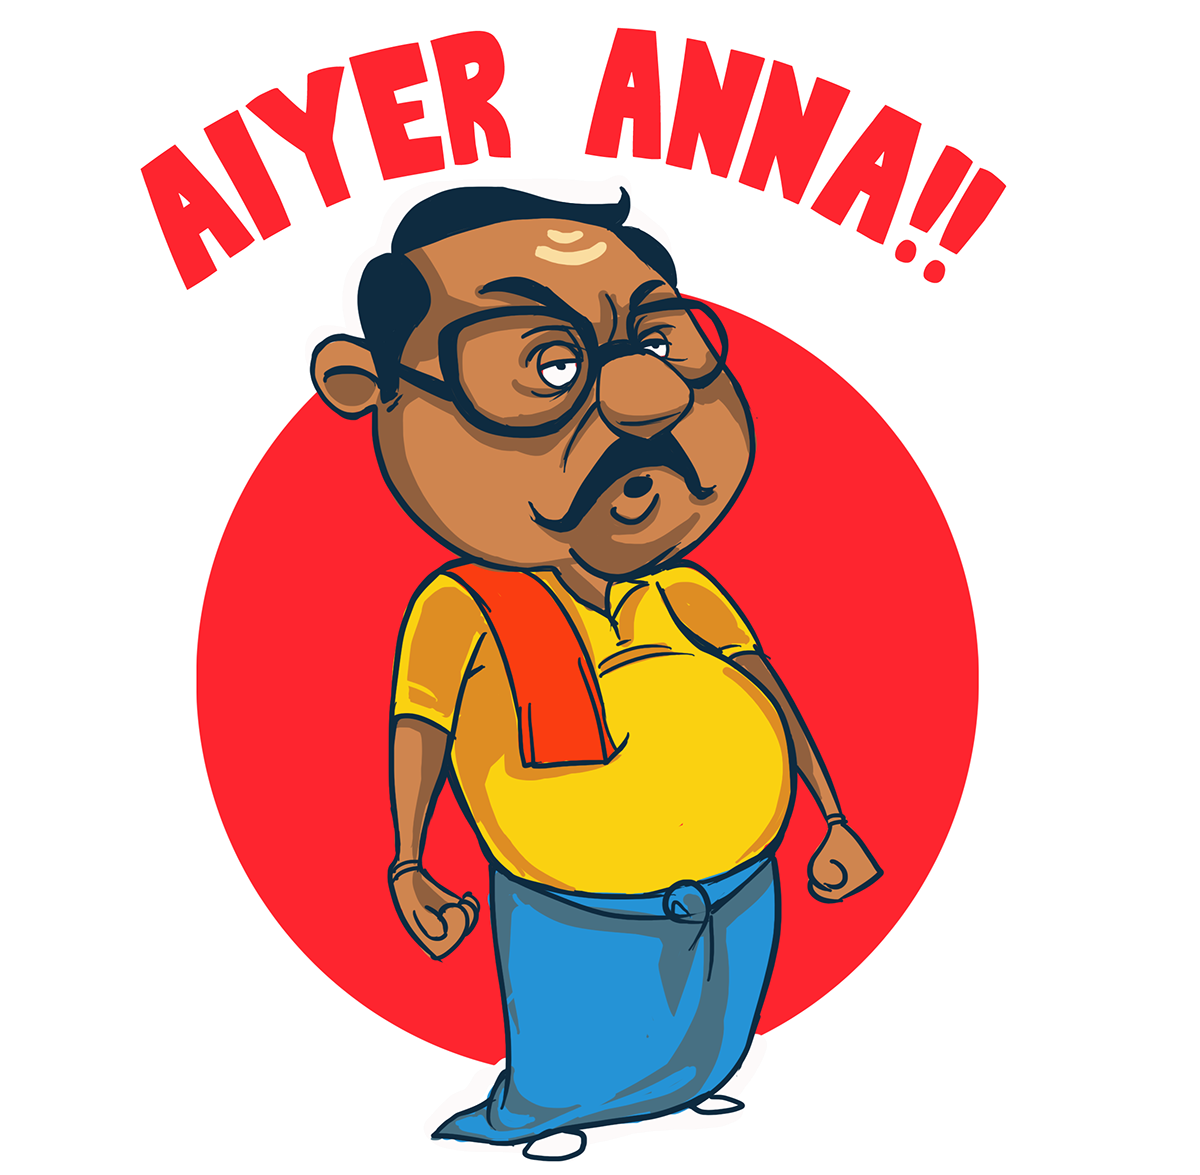 India clipart south. Aiyer anna sticker design